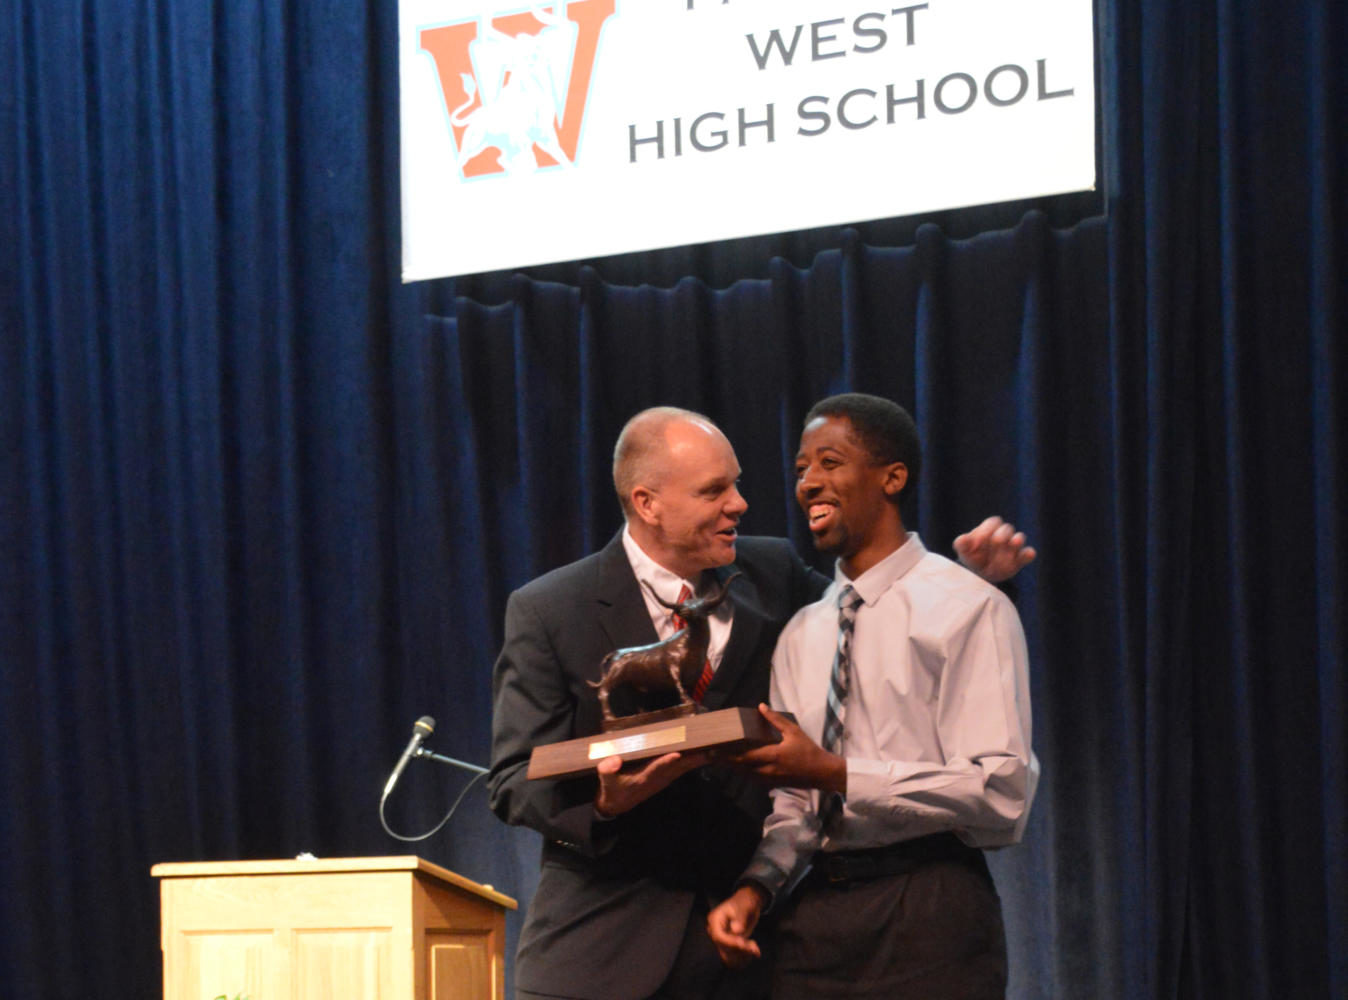 Principal+Jeremy+Mitchell+awards+senior+Nehemiah+Colyer+the+2017+Founders+Award+recipient.+The+Founder%E2%80%99s+Award+is+given+to+a+student+who+exemplifies+what+West+students+stand+for%3A+good+character%2C+academics%2C+school+spirit+and+is+the+highest+school+honor.